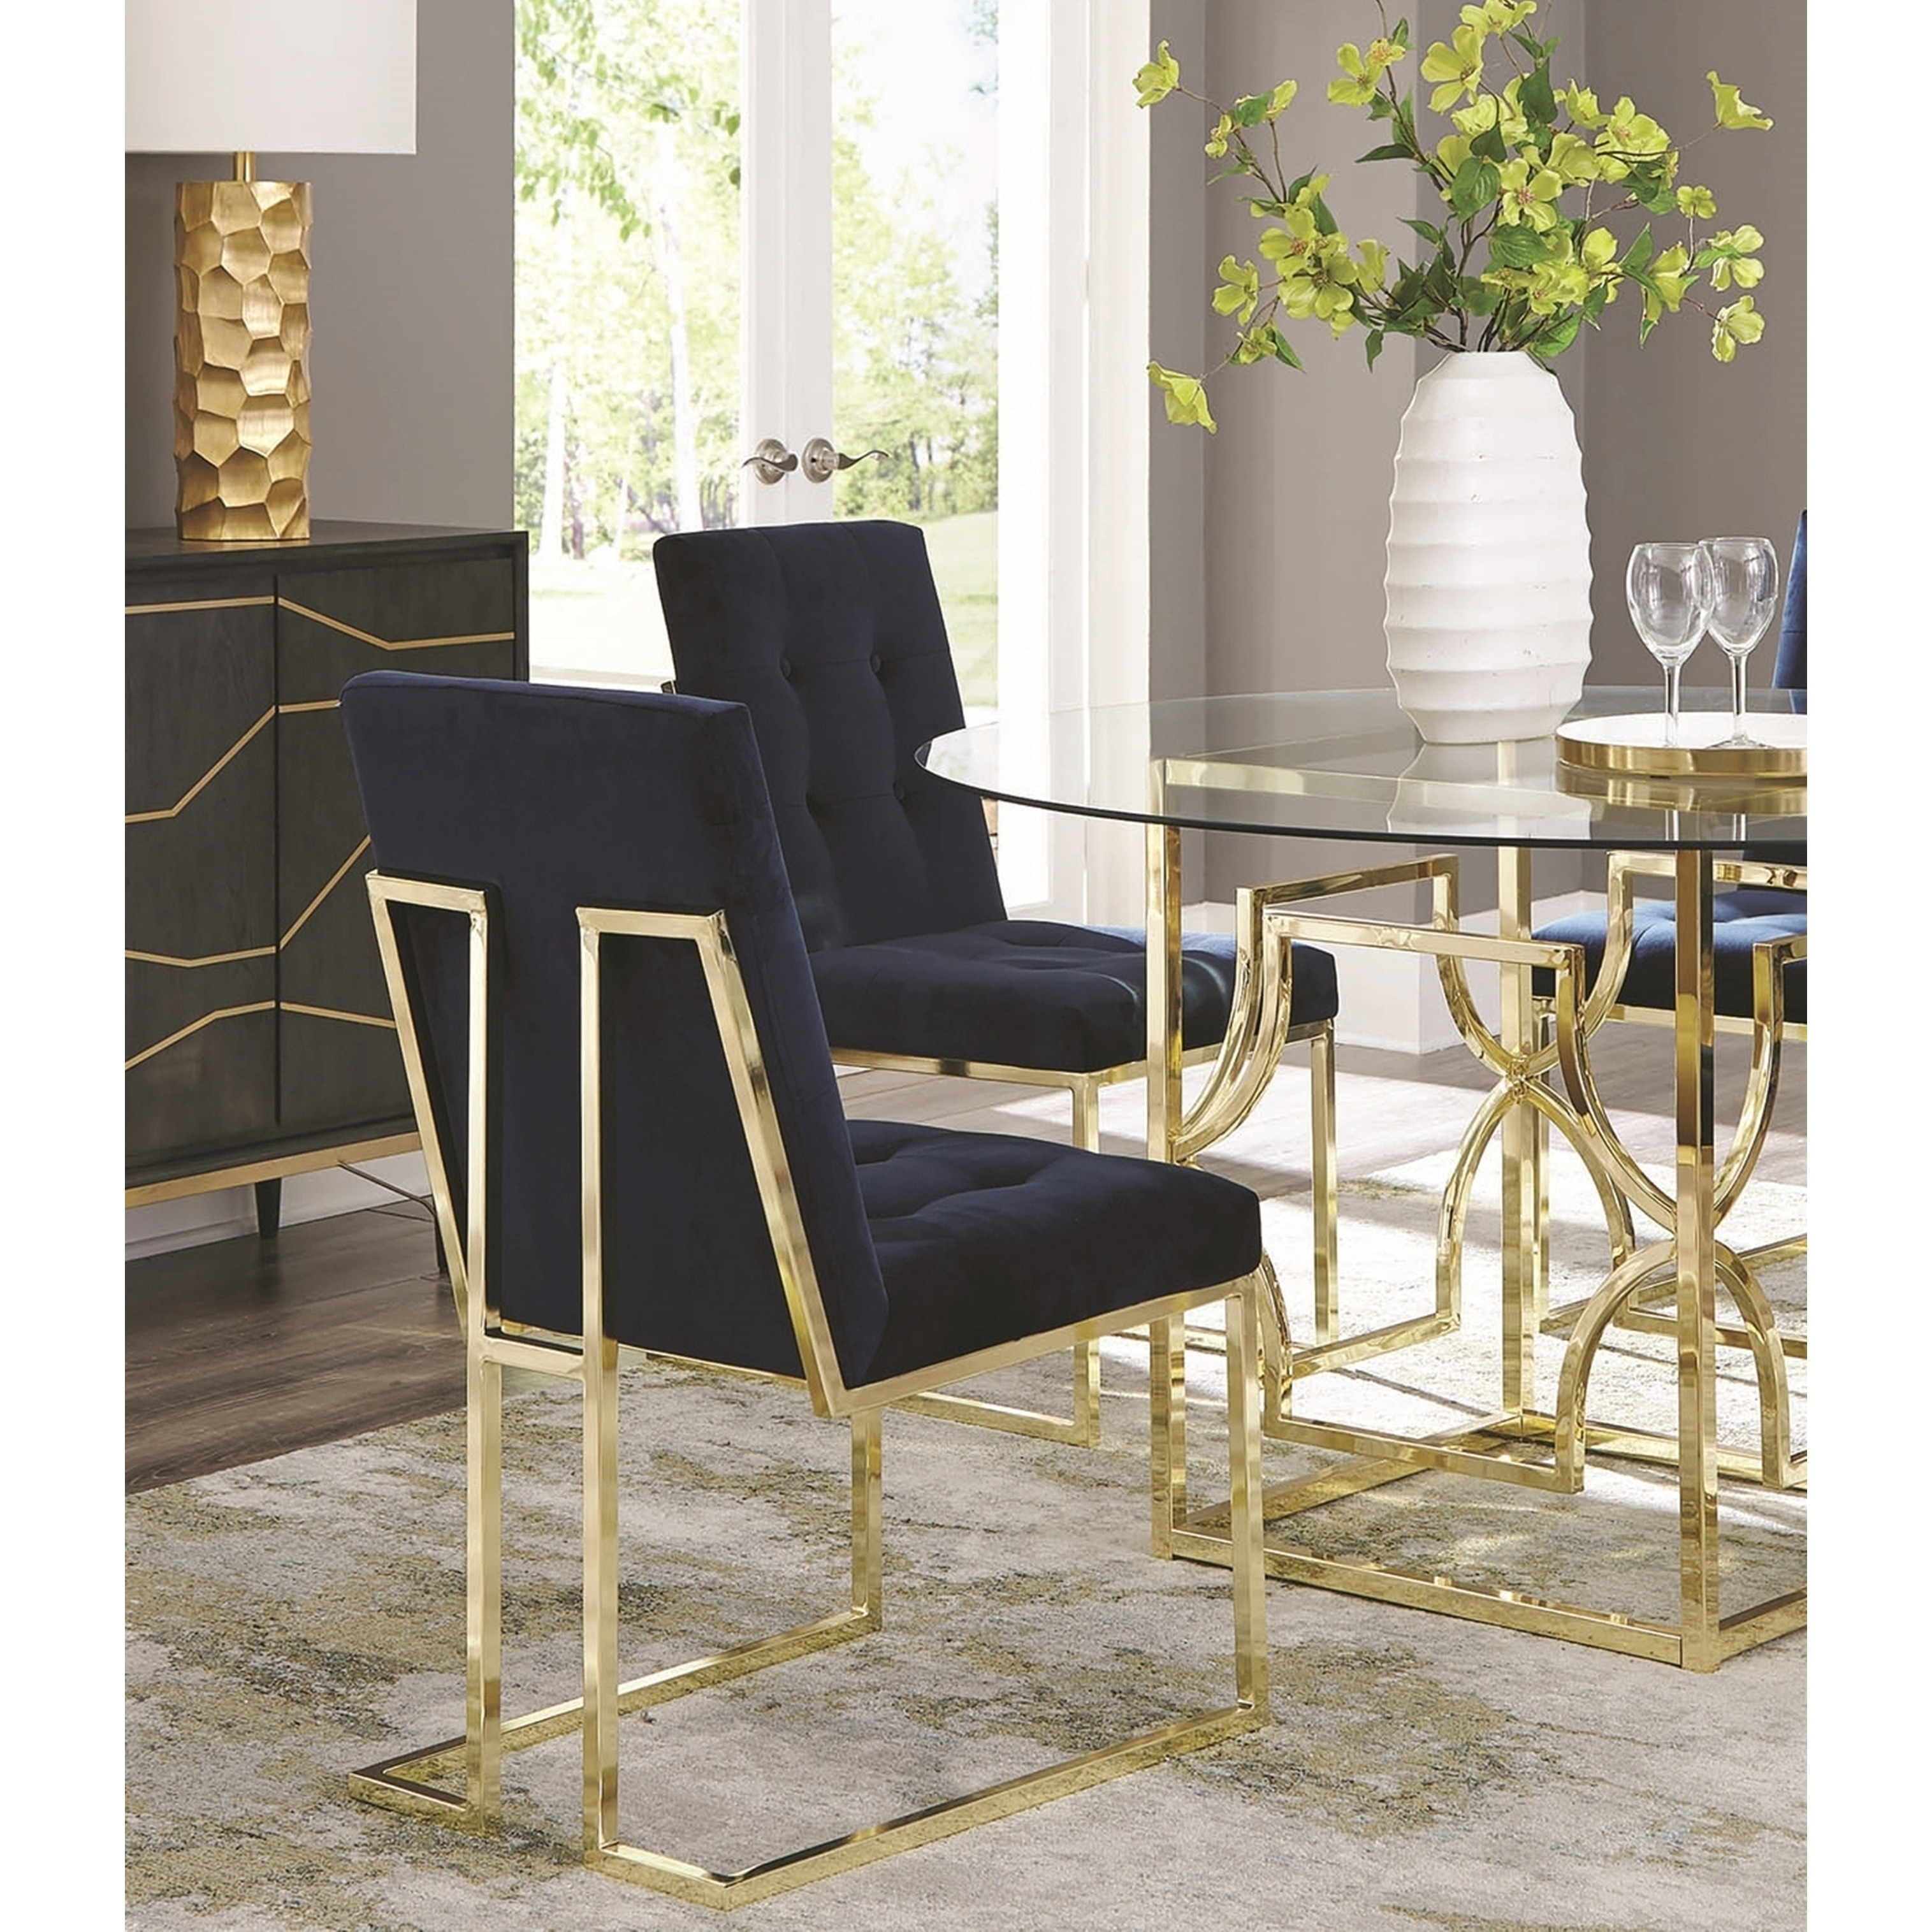 Modern Brass Artistic Floating Design Tufted Dark Blue Dining Chairs Set Of 2